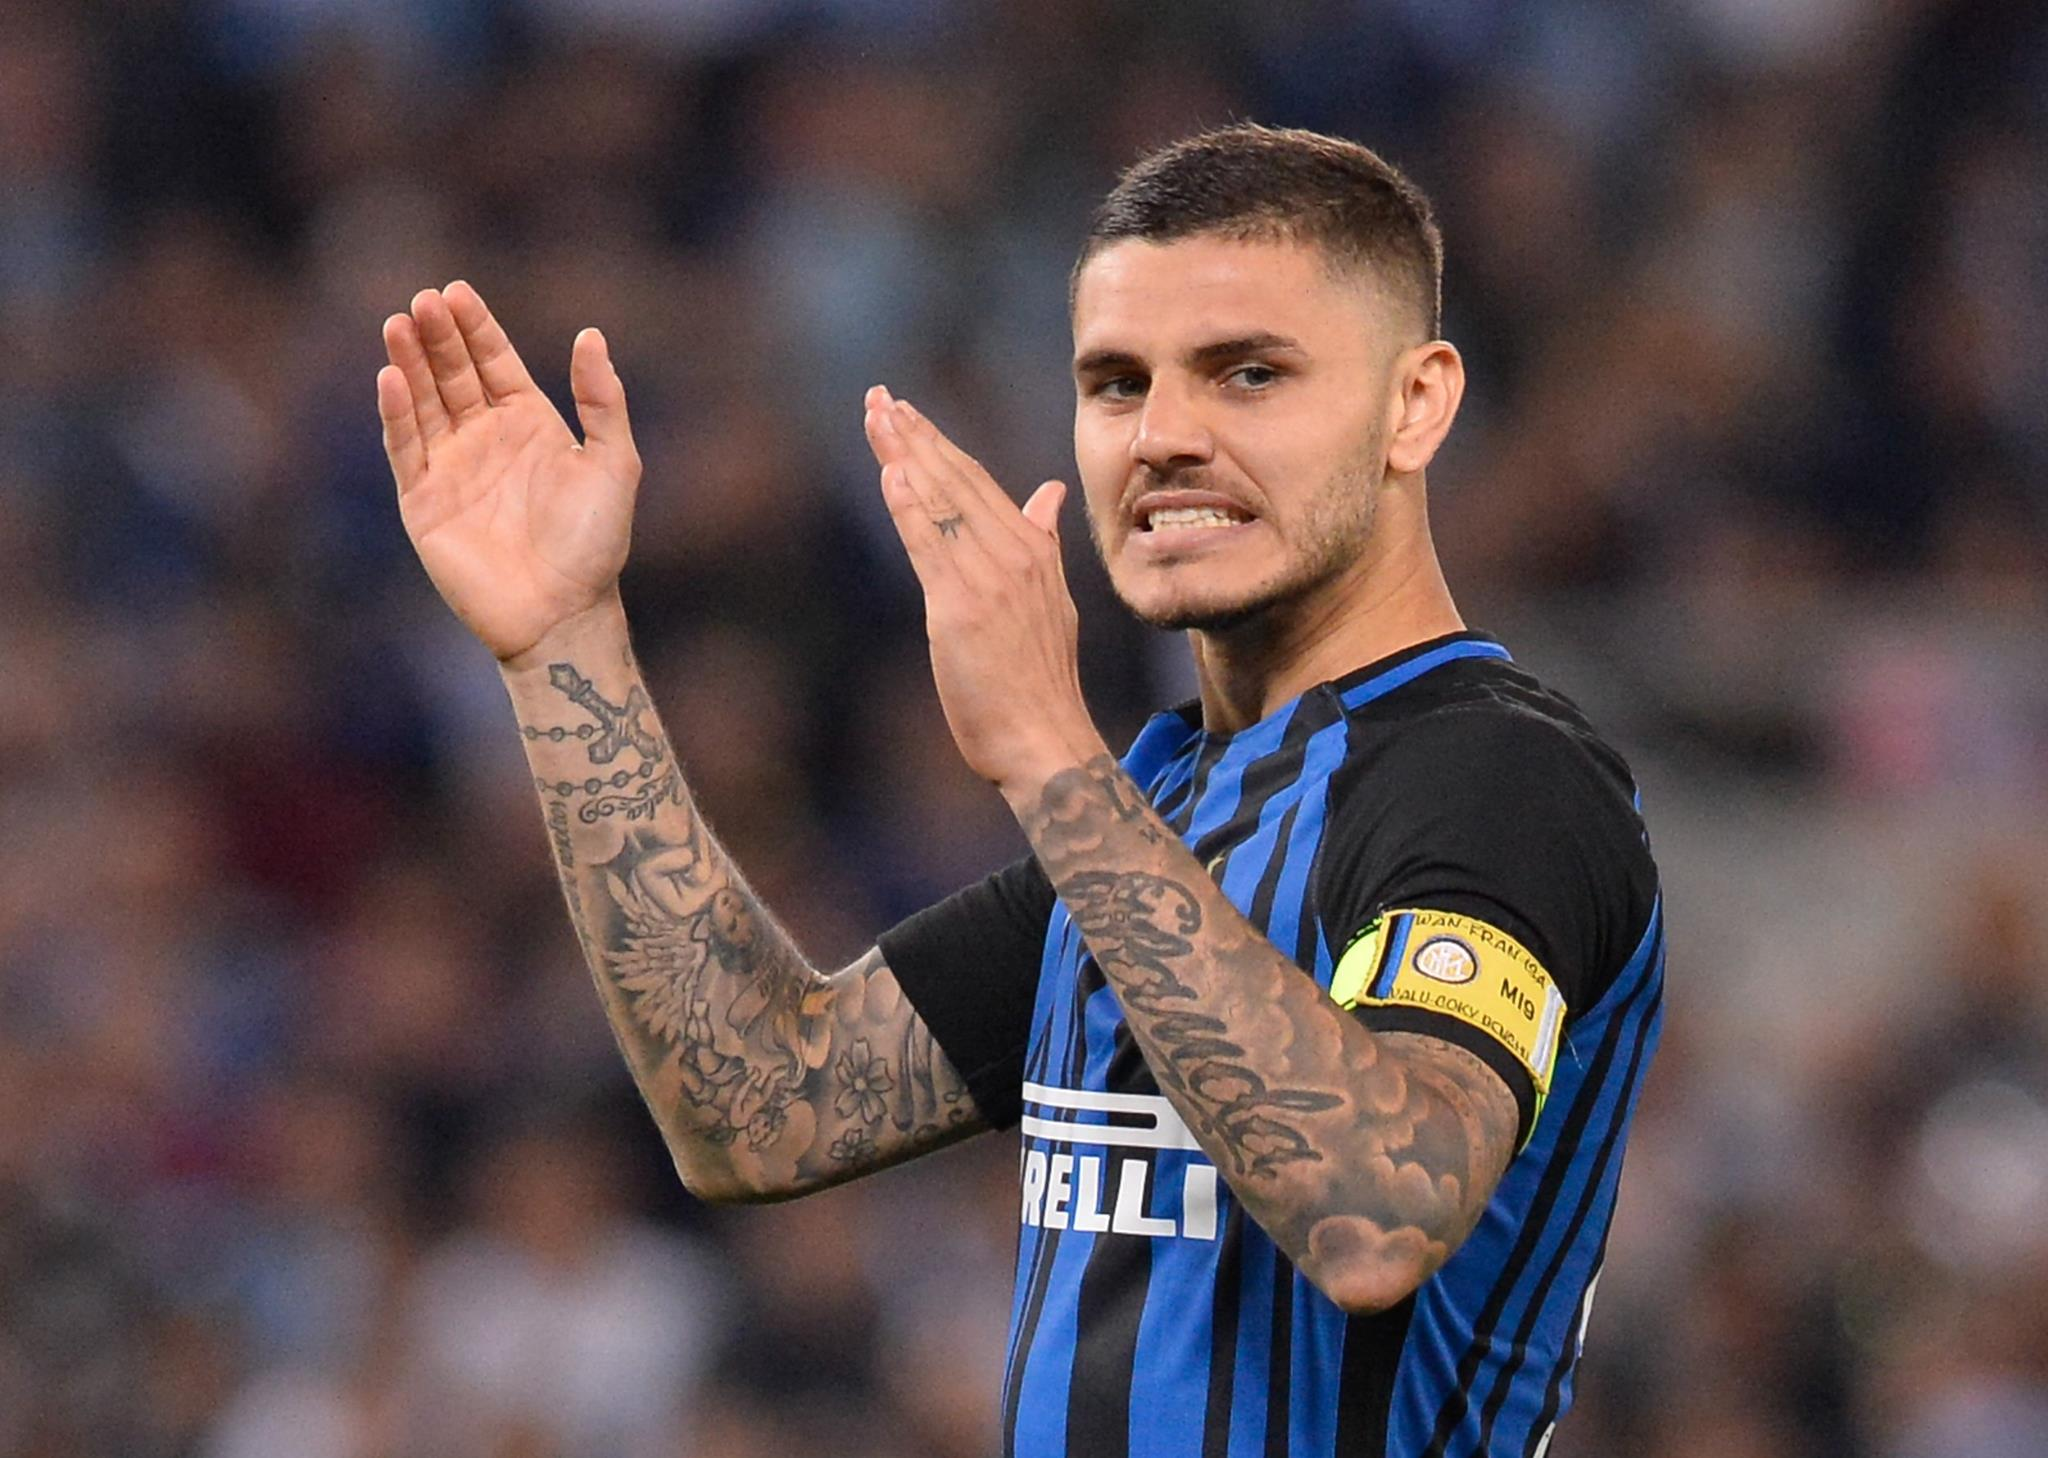 inflammation of the right knee for Mauro Icardi